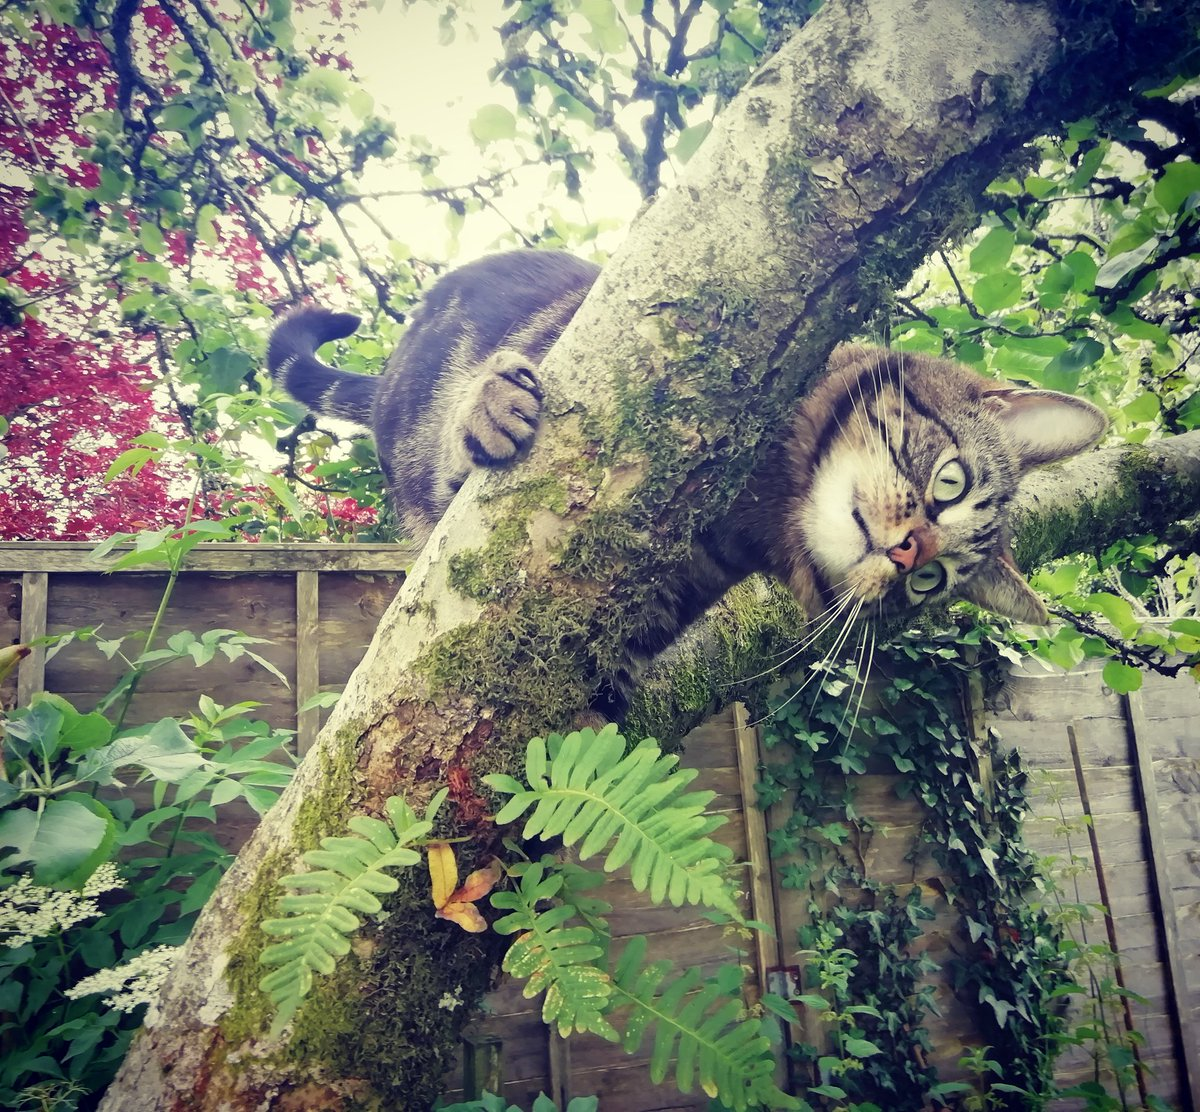 You don't need permission to be happy... Nap in the sun, eat the nip, climb the tree... Happiness is what you make it   #MondayMotivation #CatsOfTwitter #cats #CuteCats #MondayMorning #mondaythoughts #MondayMood <br>http://pic.twitter.com/k6c3a4y16y